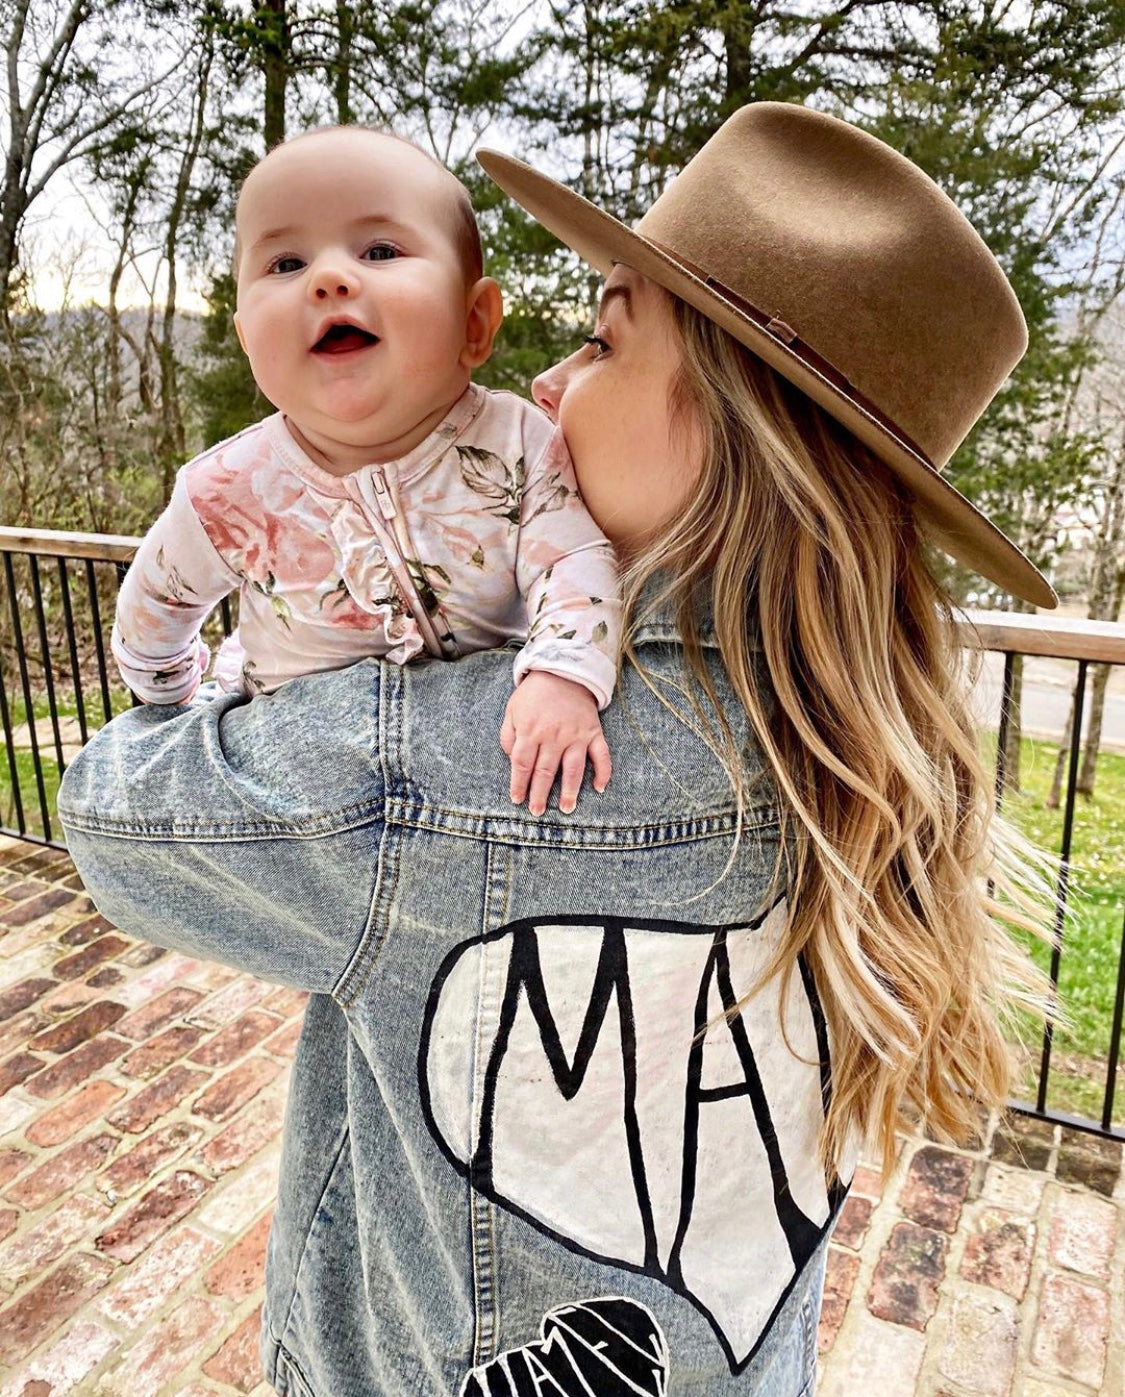 GYMNAST SHAWN JOHNSON EAST IN HER 'MAMA' JACKET